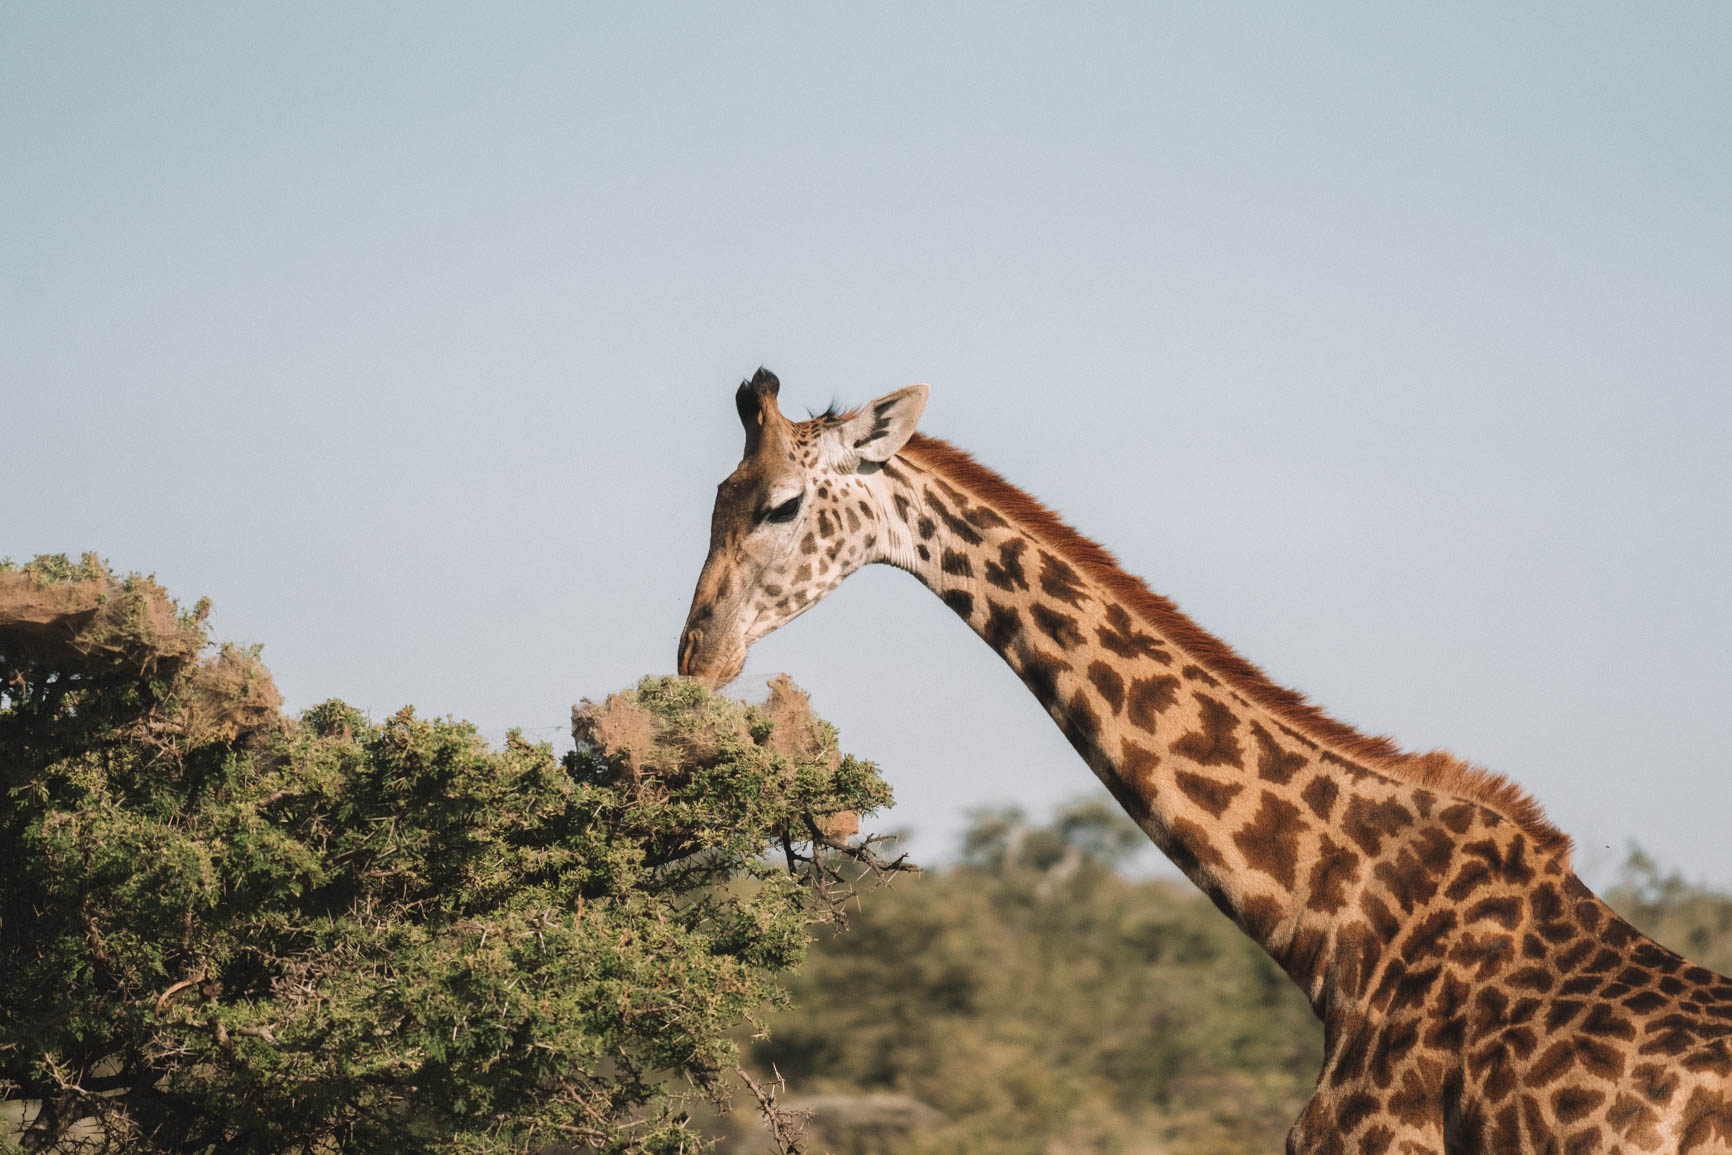 Everything you need to know before your safari trip to Kenya and Tanzania